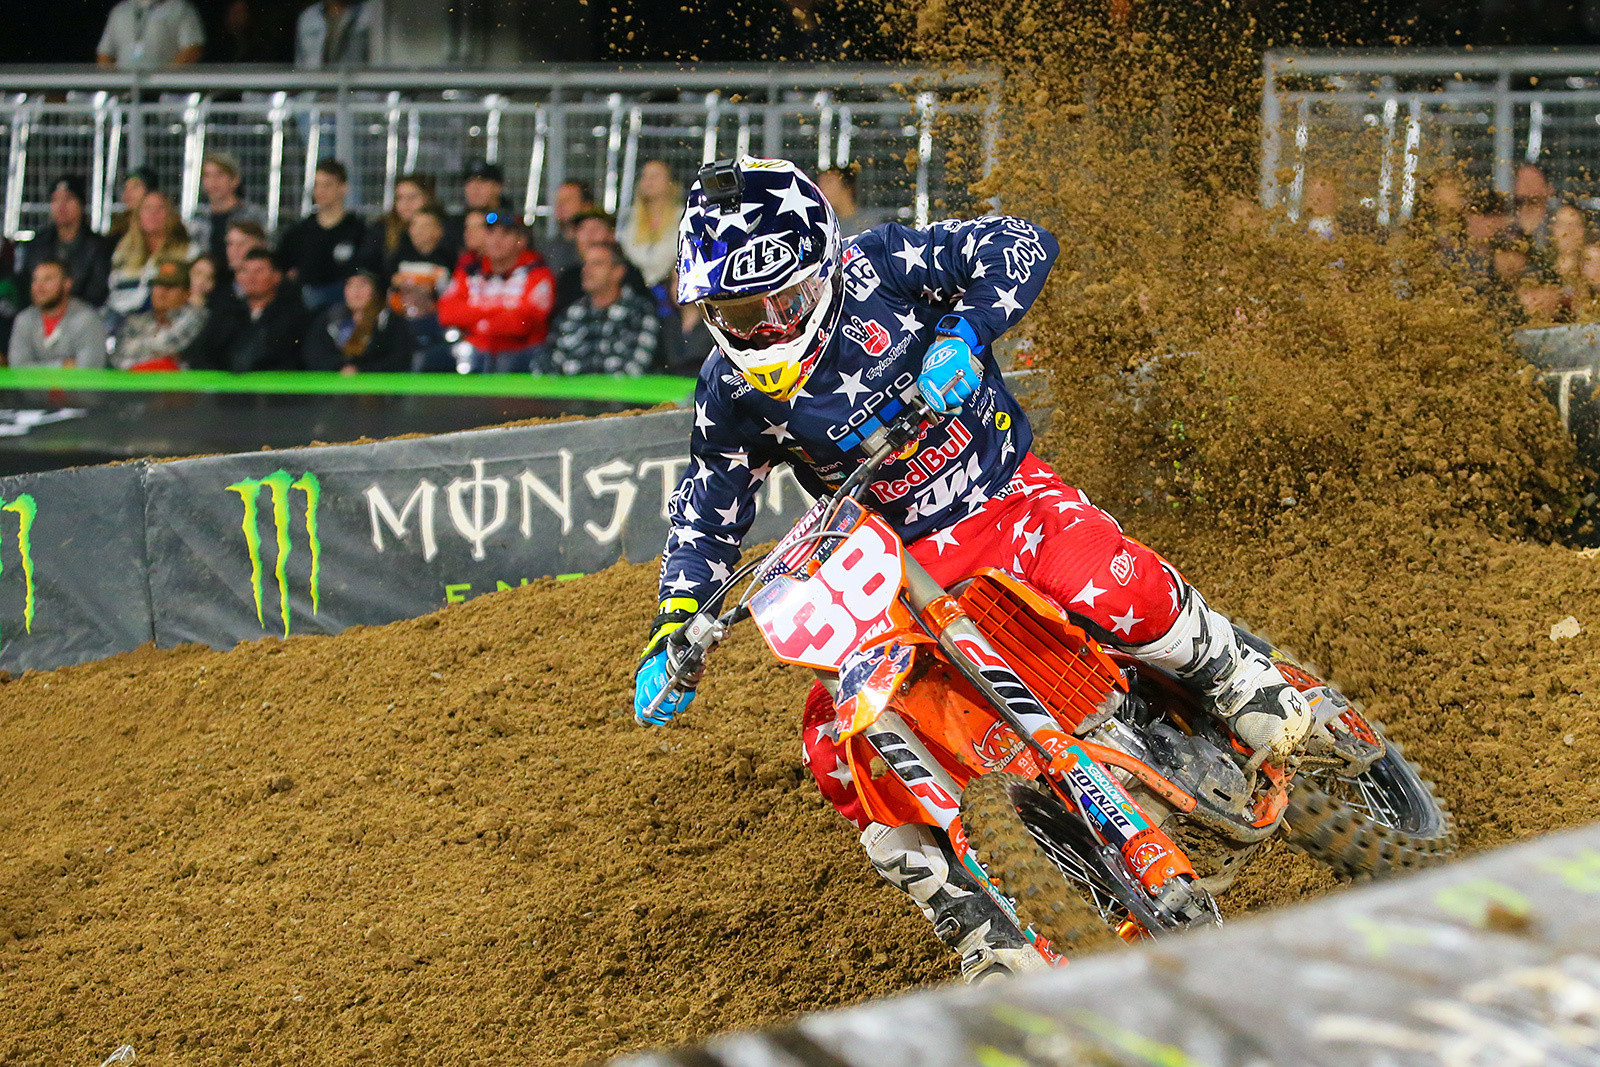 2017 San Diego Supercross